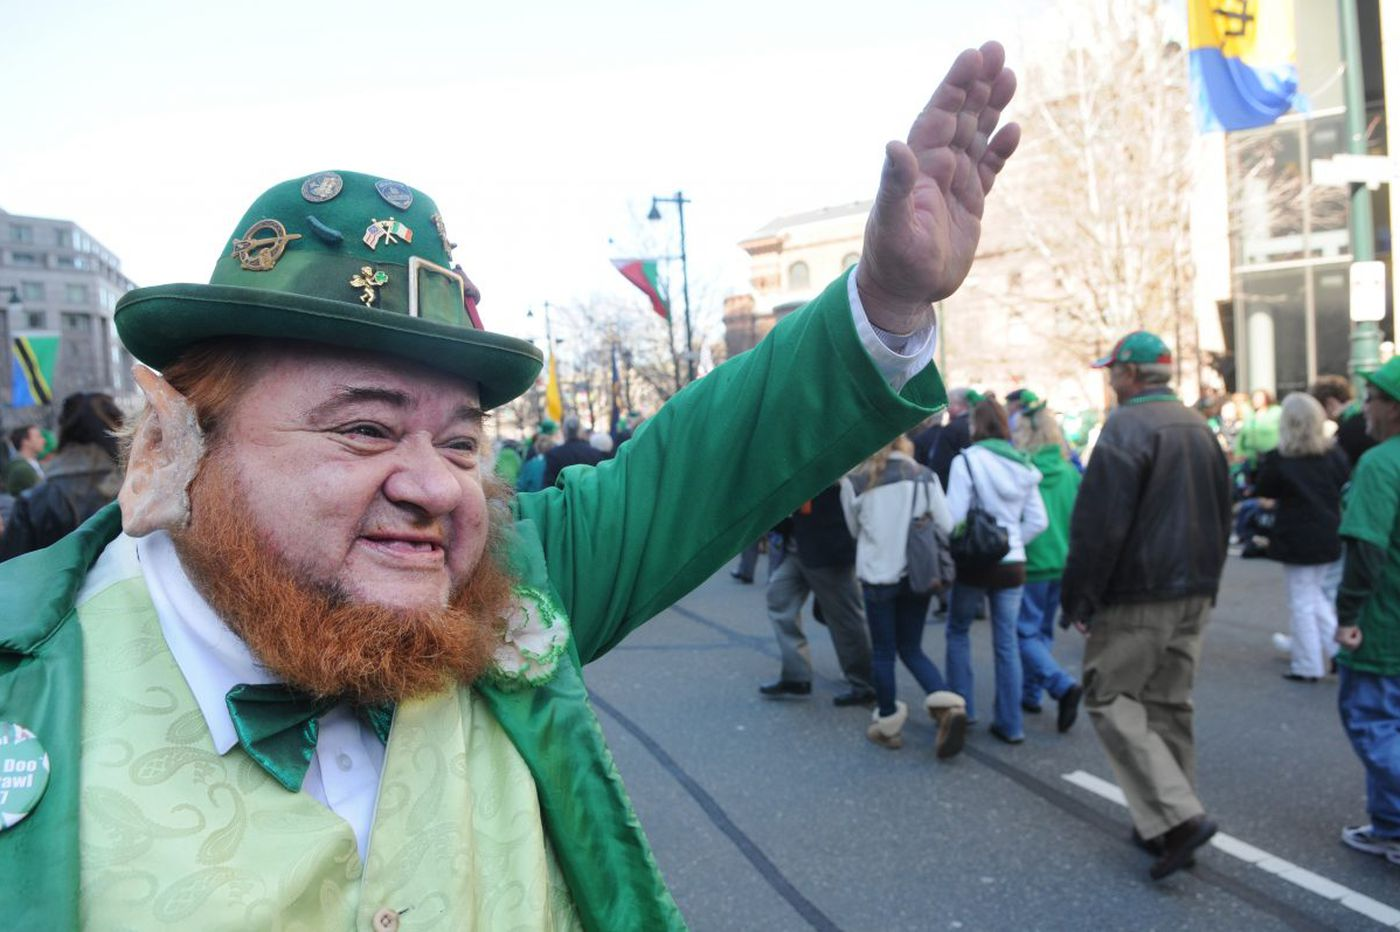 St. Patrick's Day in Philly: How to avoid making bad decisions | Quiz